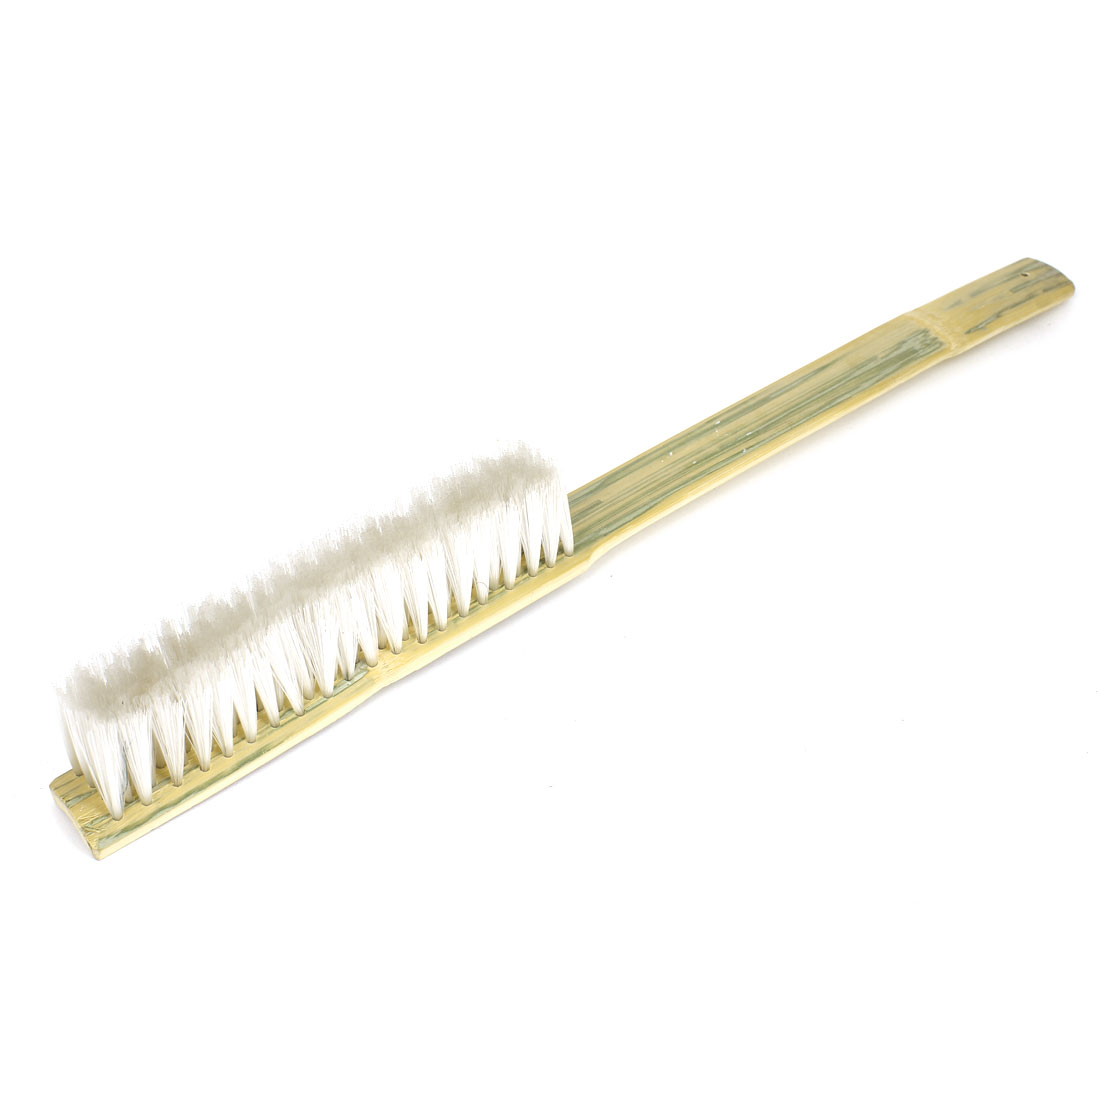 60cm Long Bamboo Handle Handheld 7 Rows Nylon Brush Cleaning Tool White